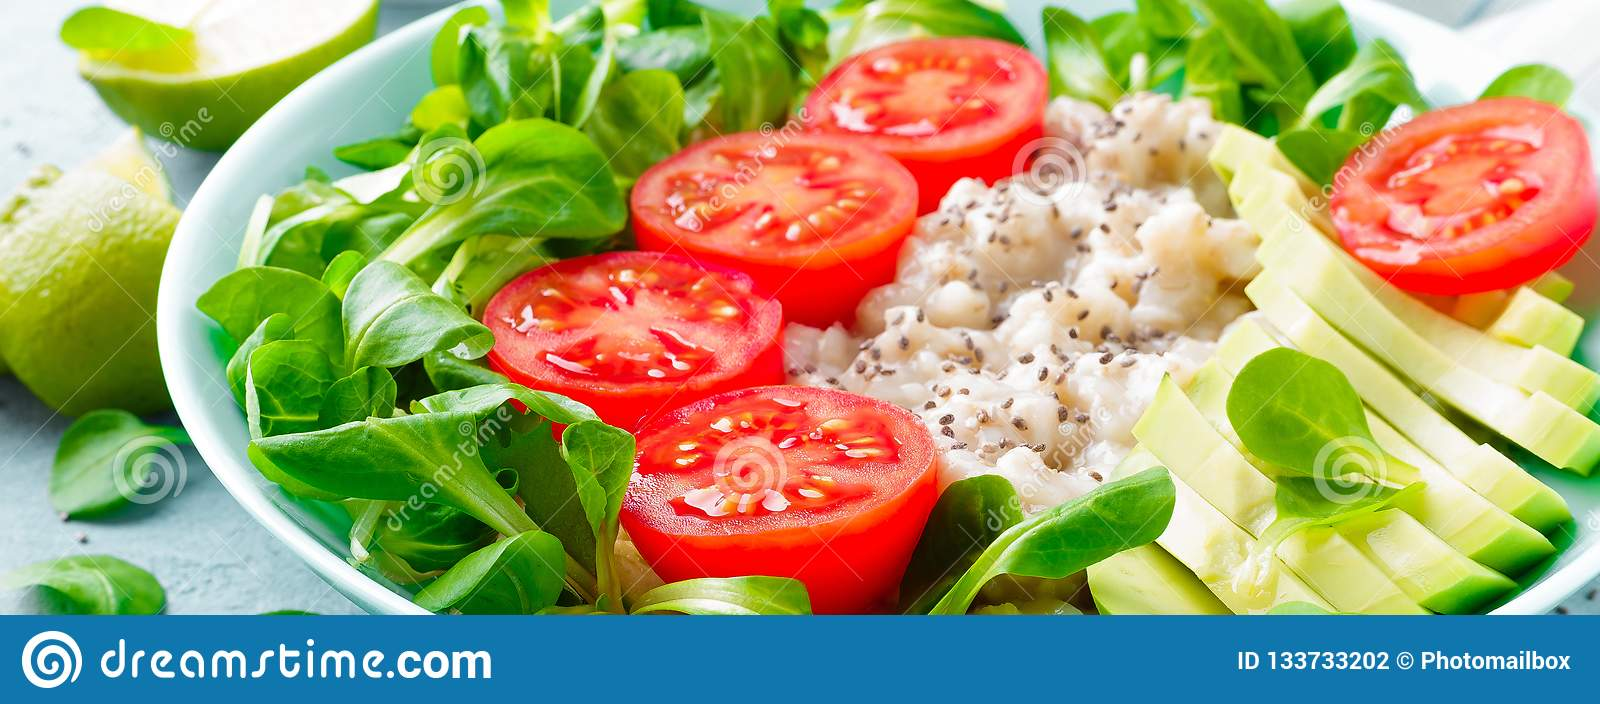 Oatmeal porridge with avocado and vegetable salad of fresh tomatoes and lettuce. Healthy dietary breakfast